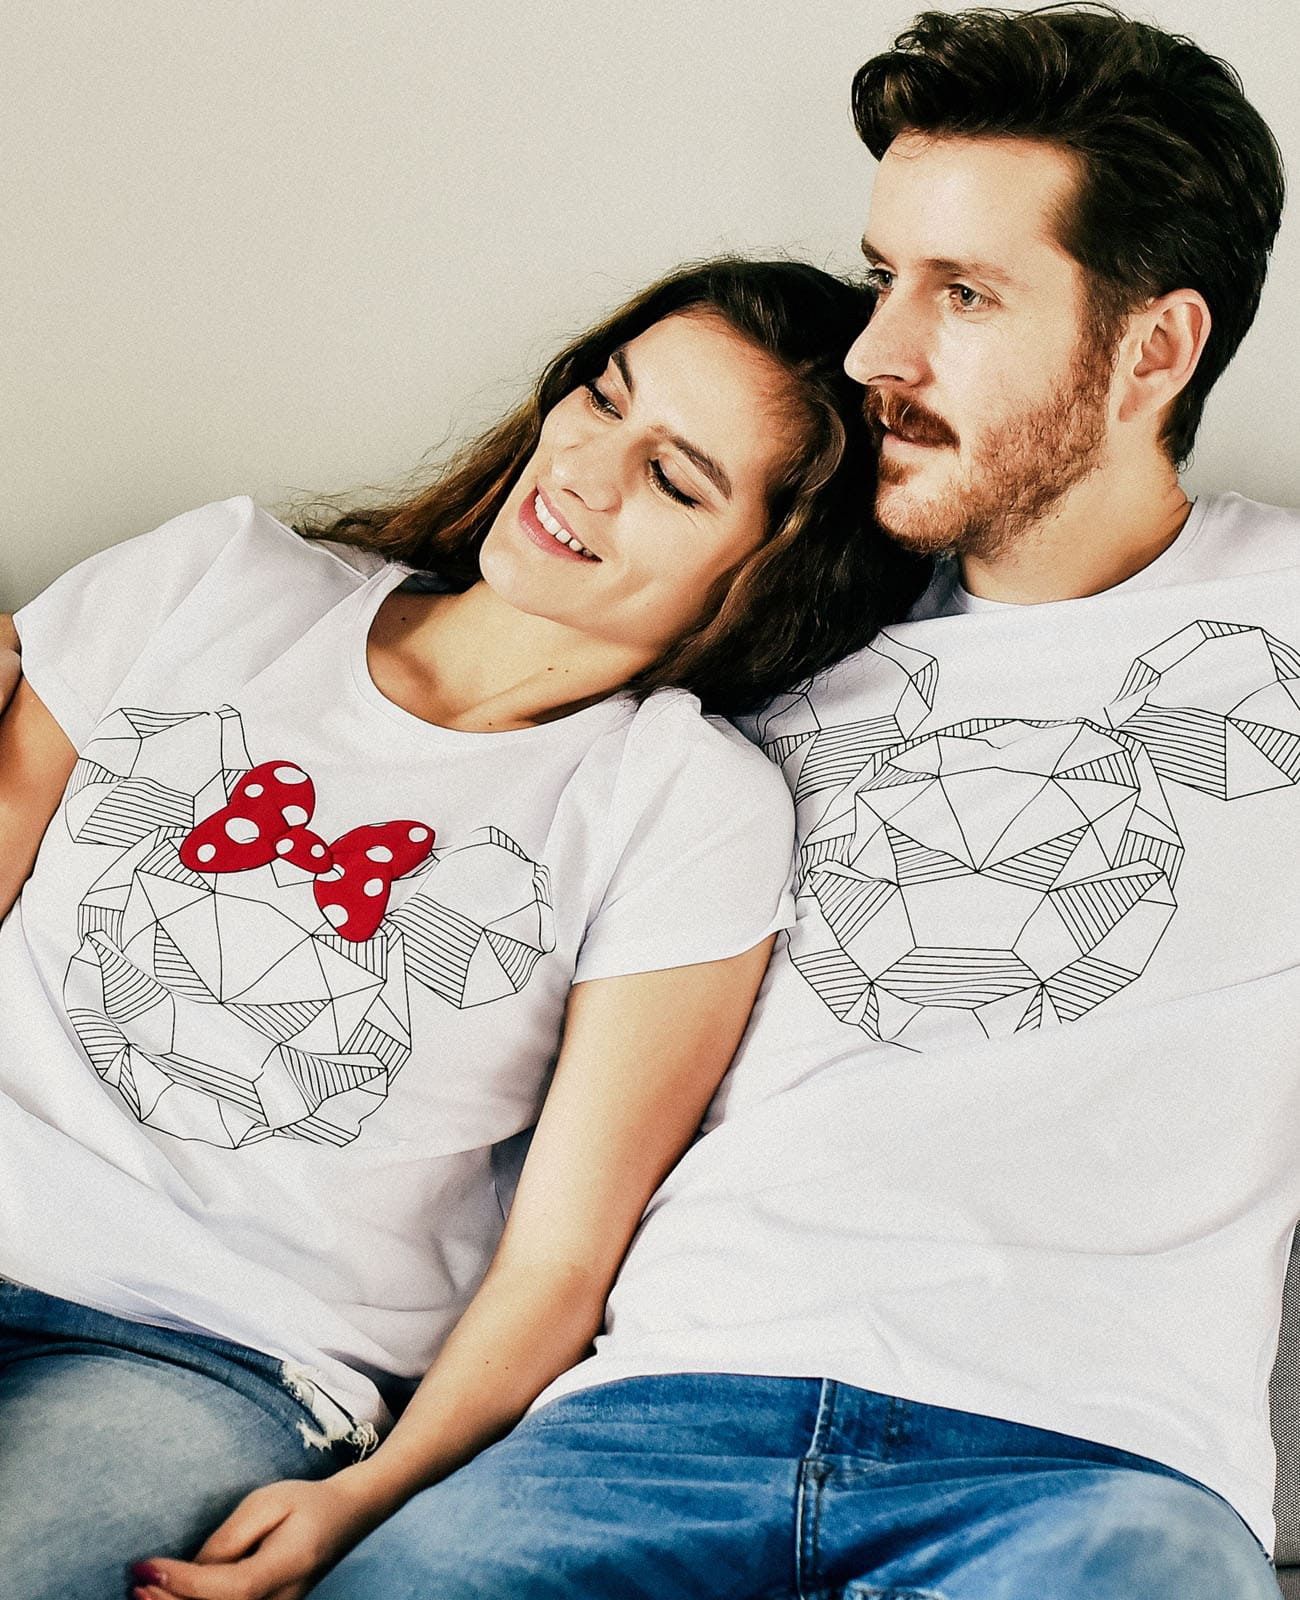 Love Couple in matching T-shirts